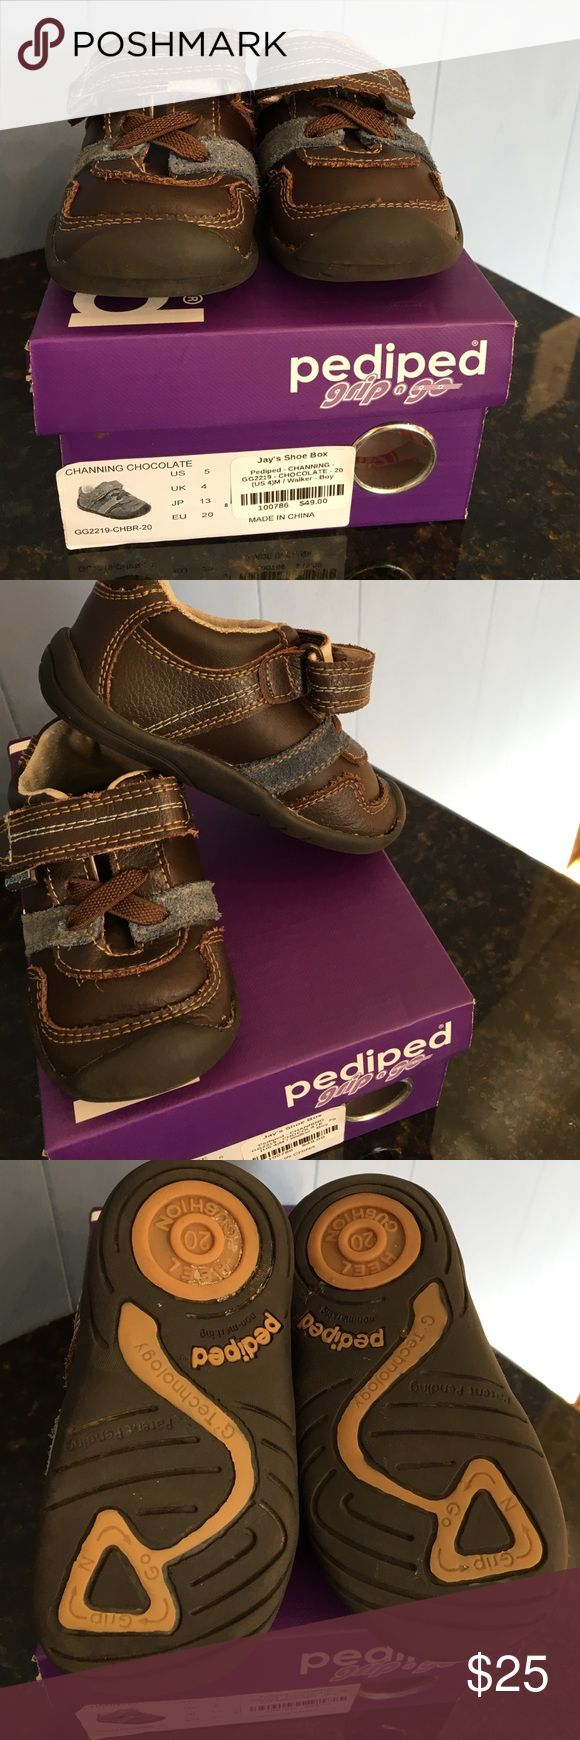 Best 25+ Pediped shoes ideas on Pinterest | Hp share price ...